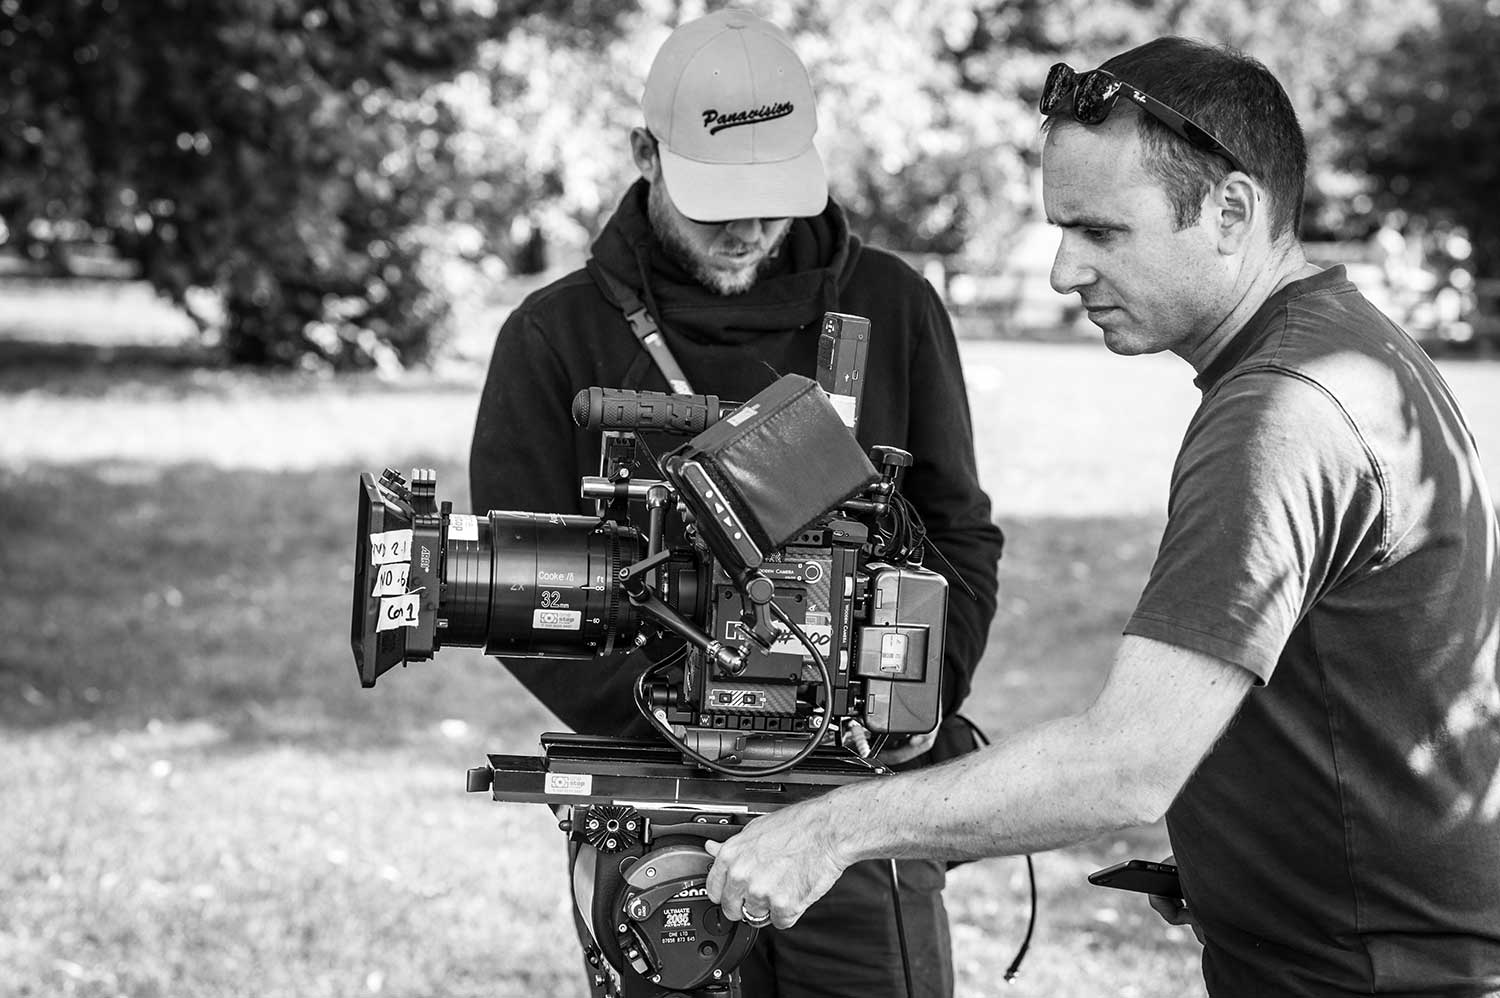 Director of Photography Matt Shaw (right) and Focus Puller Mike Linforth set up a shot.